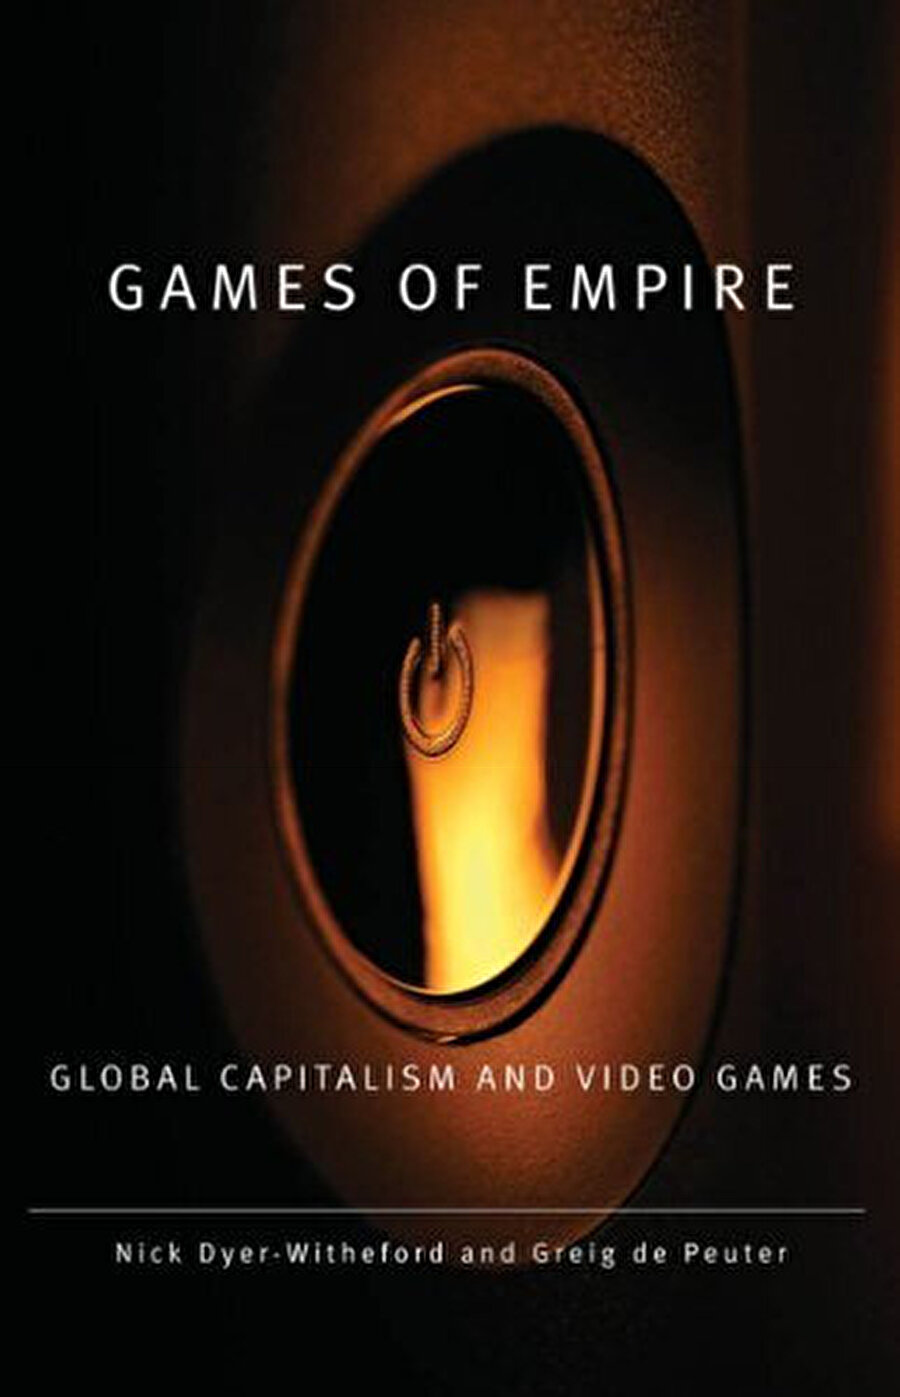 Games of Empire: Global Capitalism and Video Games, Nick Dyer Witheford, Greig de Peuter